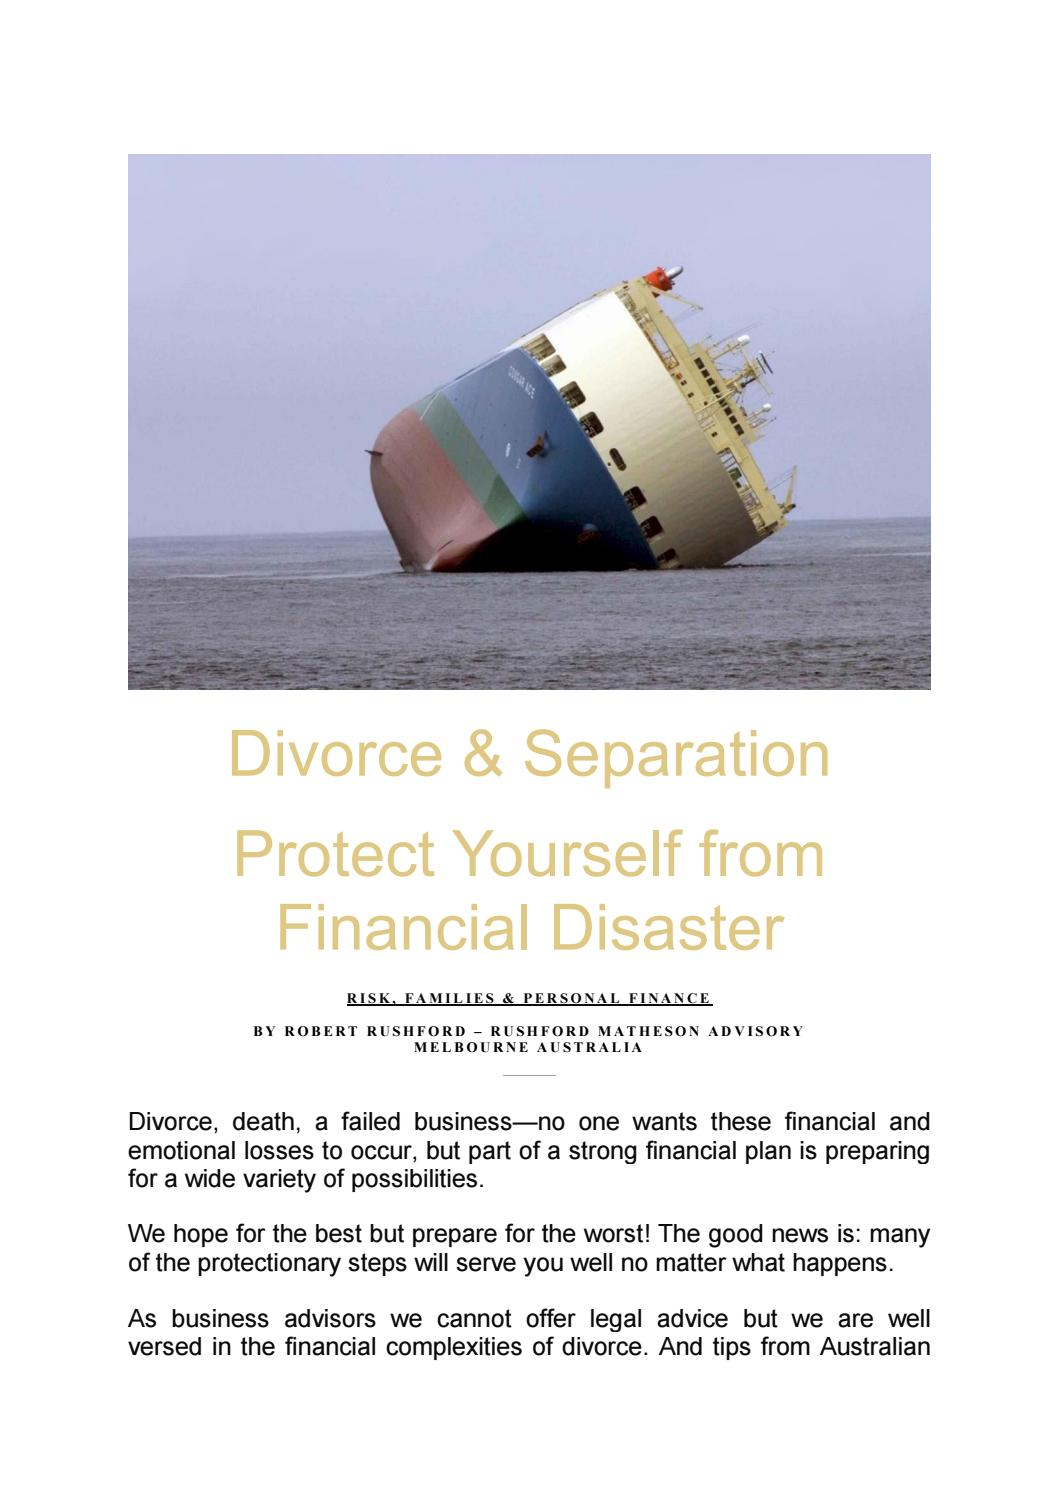 Death Or Divorce - No Matter What, Its Just Not Easy